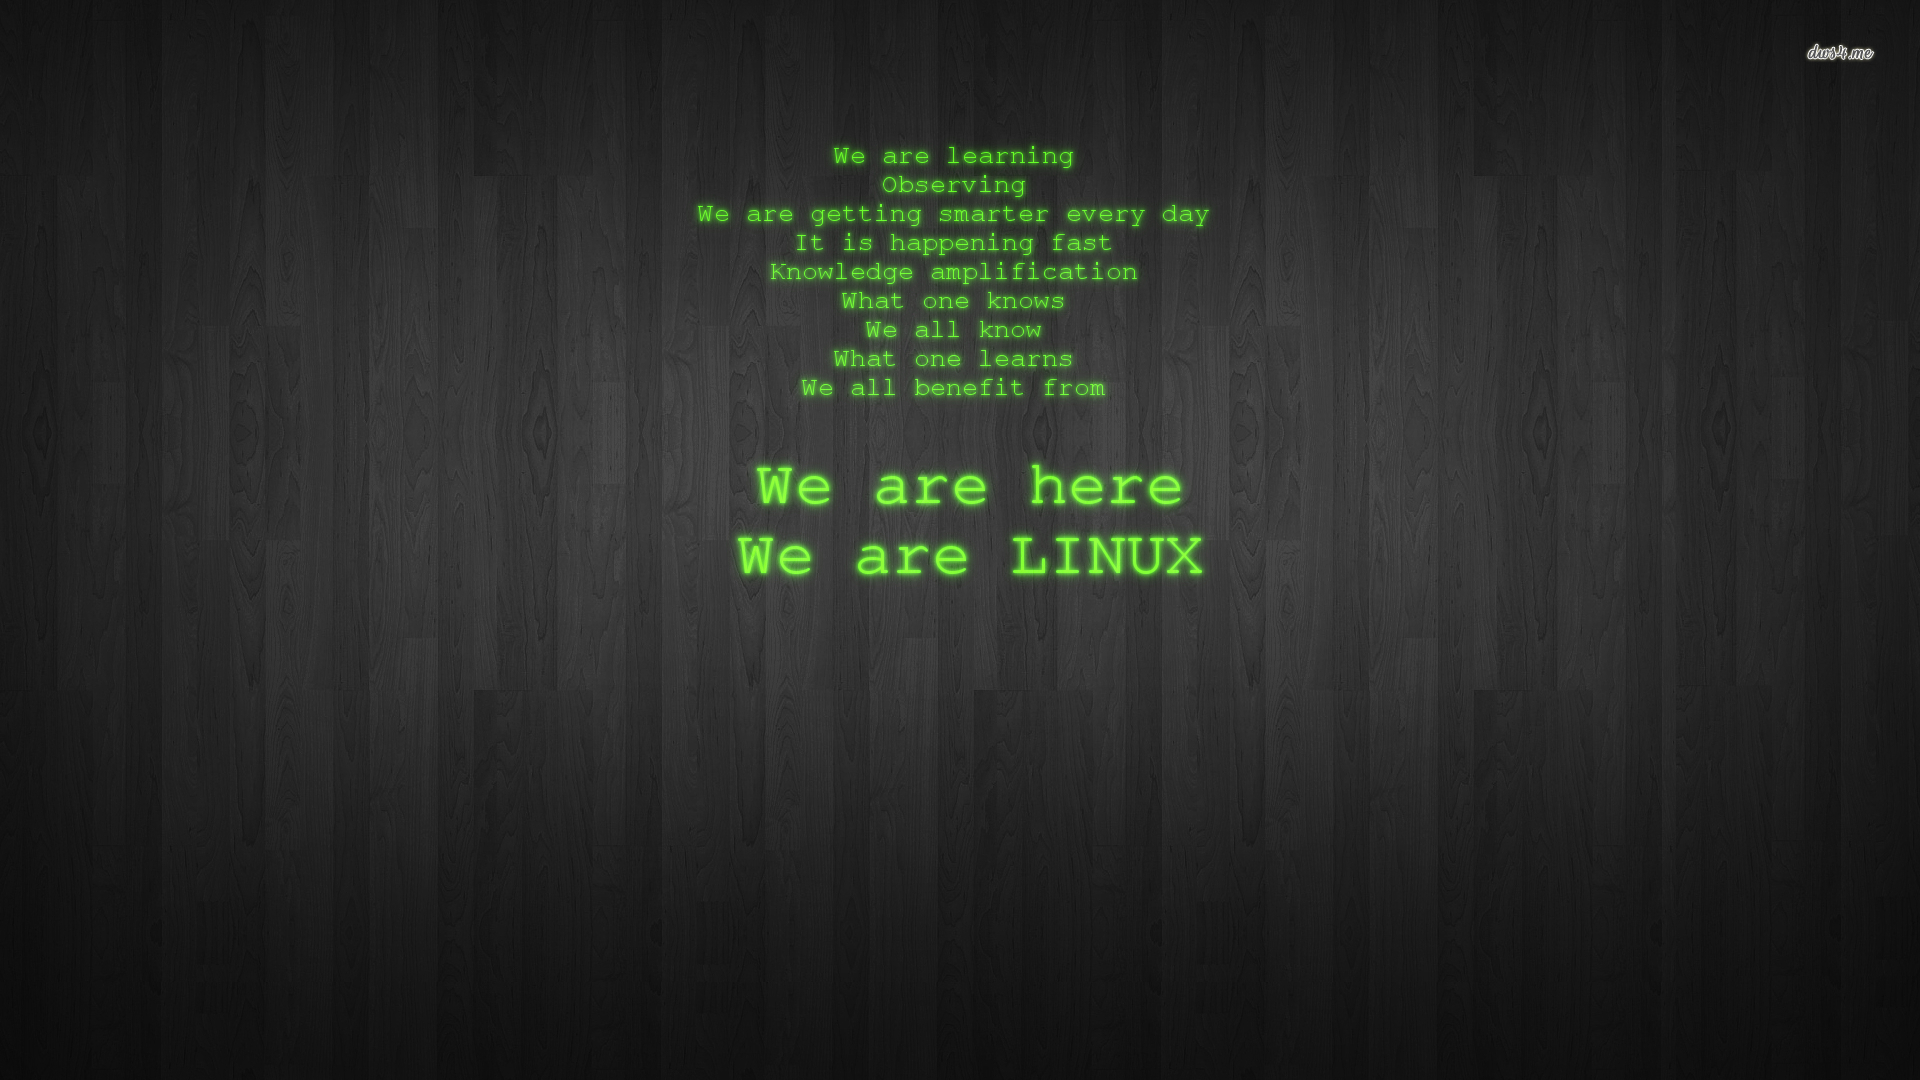 Linux Wallpaper Download